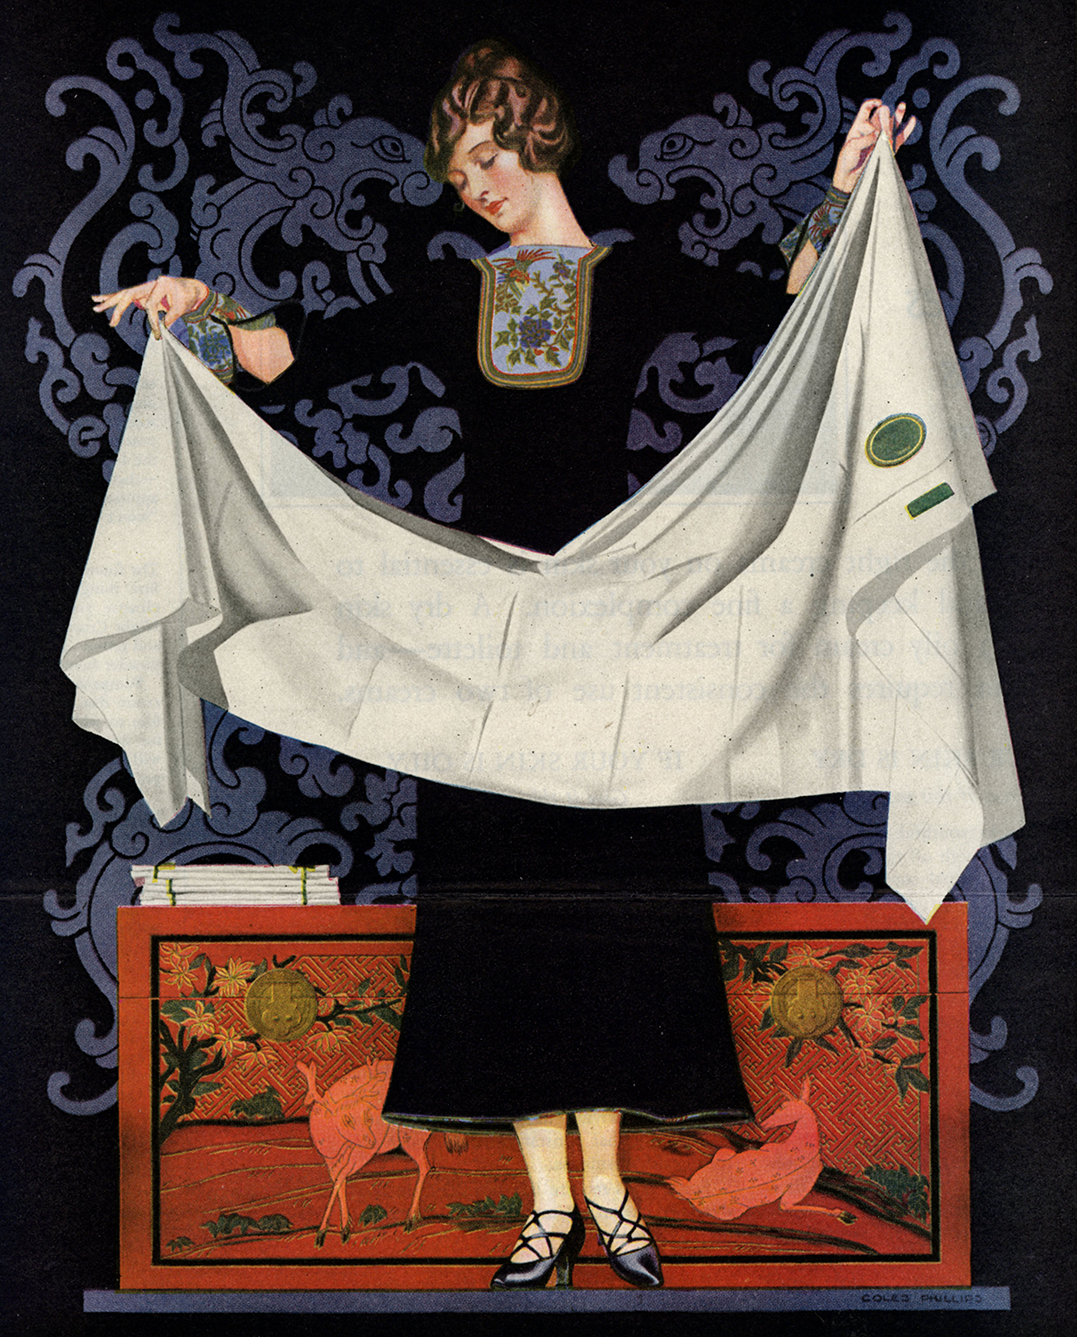 Coles Phillips, Advertisement for Wamsutta Percale, a purveyor of sheets and pillow cases. Ladies Home Journal, May 1924. Note how the figure is formed by edges of the lavender pattern on the dark blue field. The woman's dress has no line around it. Note also the striking shape of the drapery (also defined completely by edge, not line) which had to be observed. Mr. Phillips did not make that up.